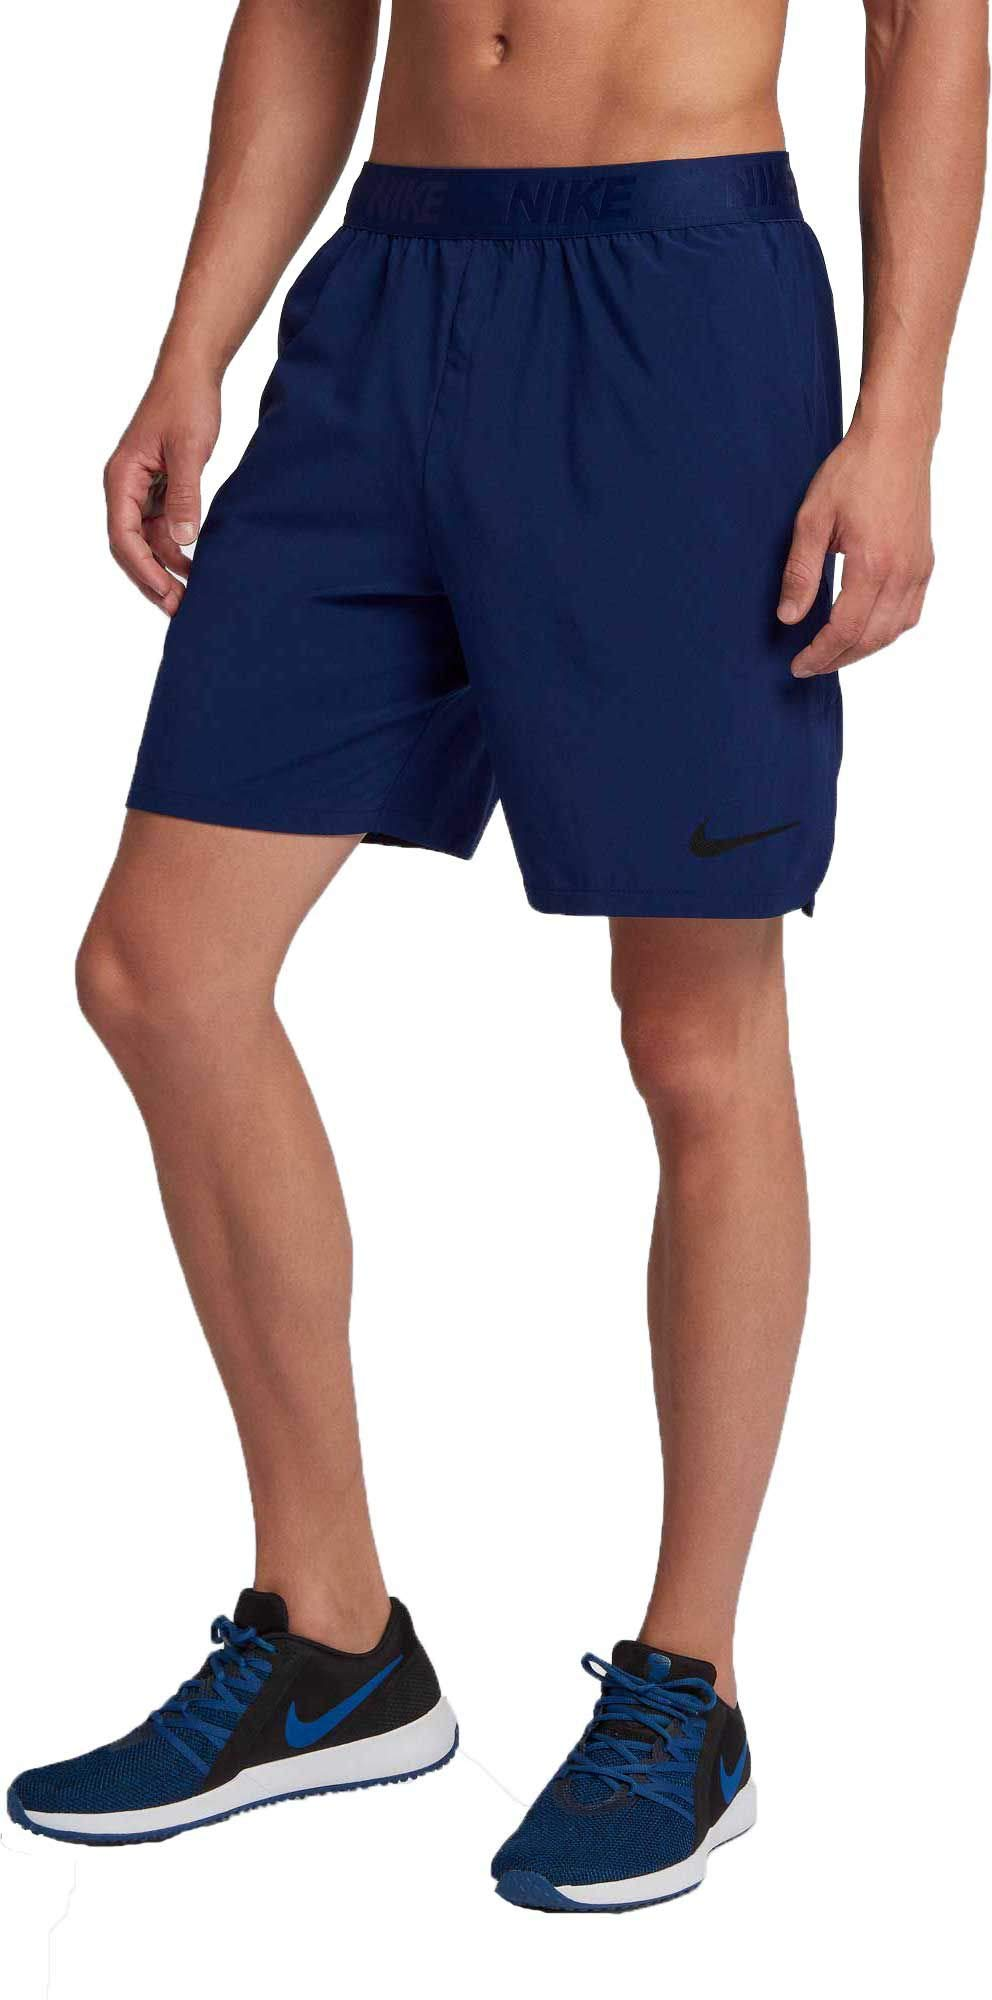 Nike M NK FLX Short Vent MAX 2.0 Men's Training Shorts❗️Ships Directly from